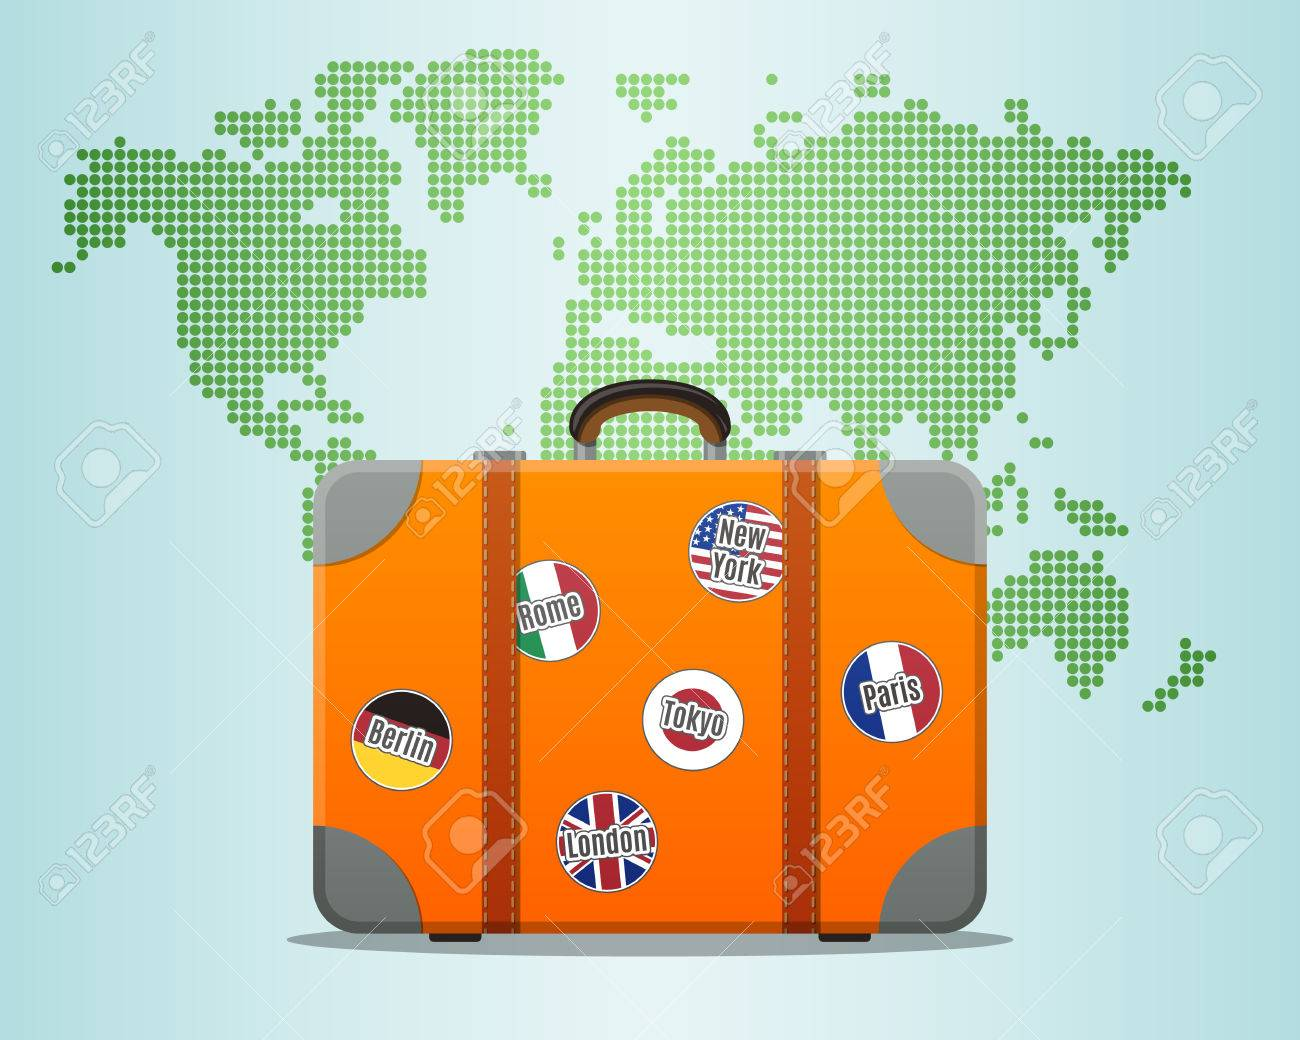 Travel suitcase with stickers and world map royalty free cliparts travel suitcase with stickers and world map stock vector 41902210 gumiabroncs Images